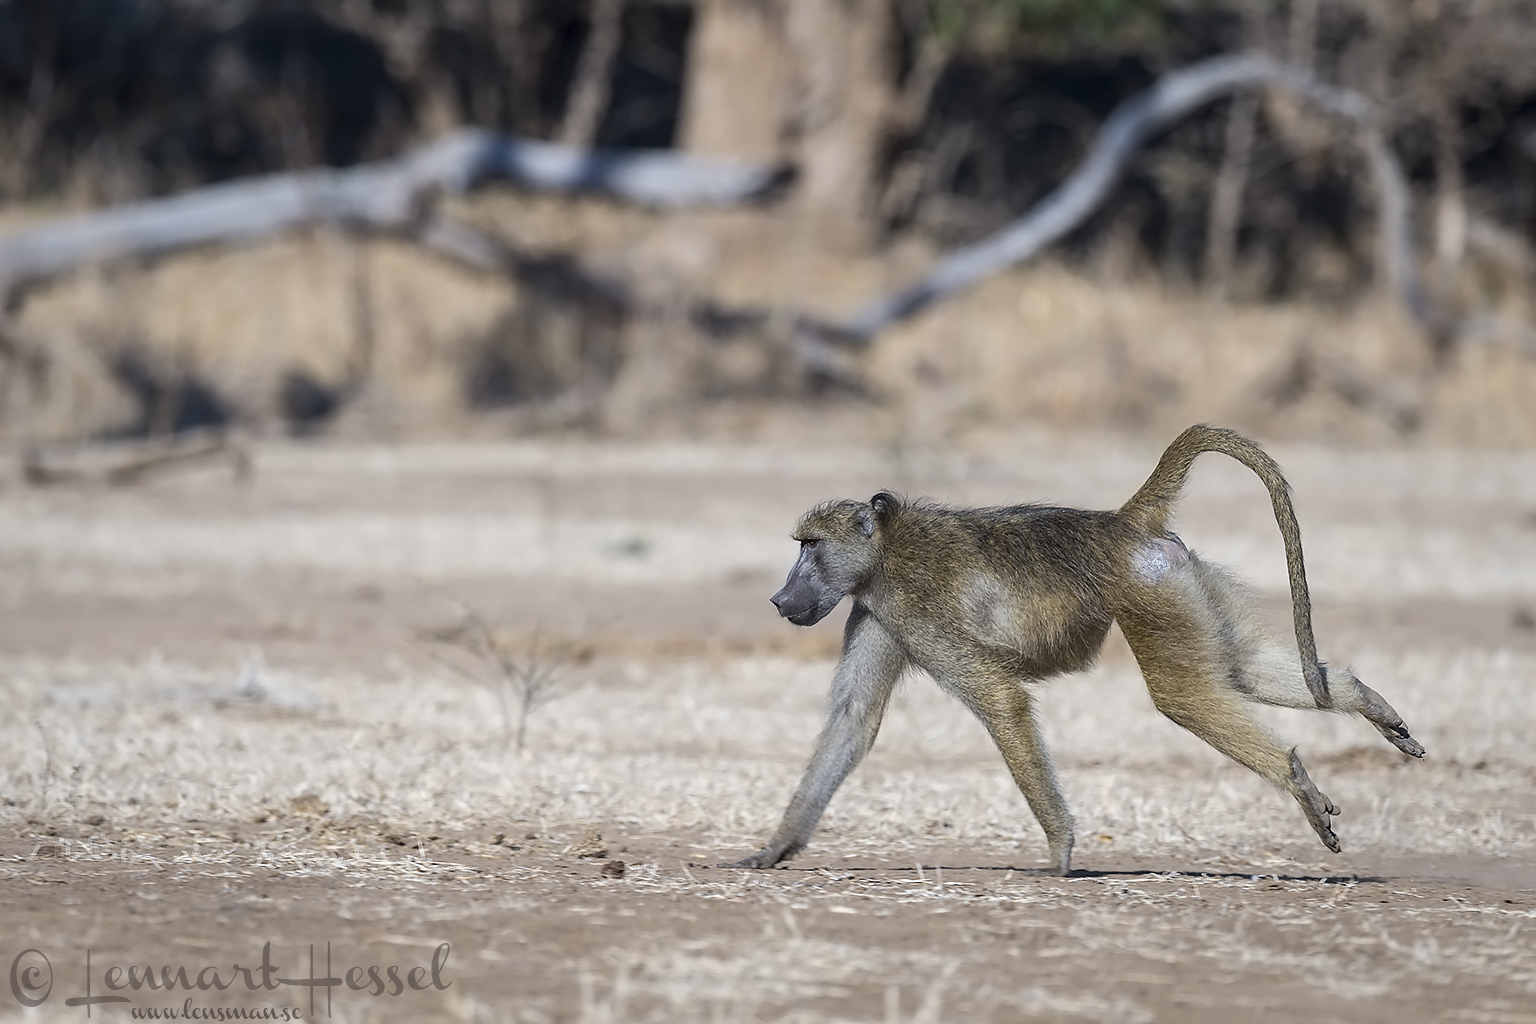 Chacma Baboon Mana Pools National Park Zimbabwe